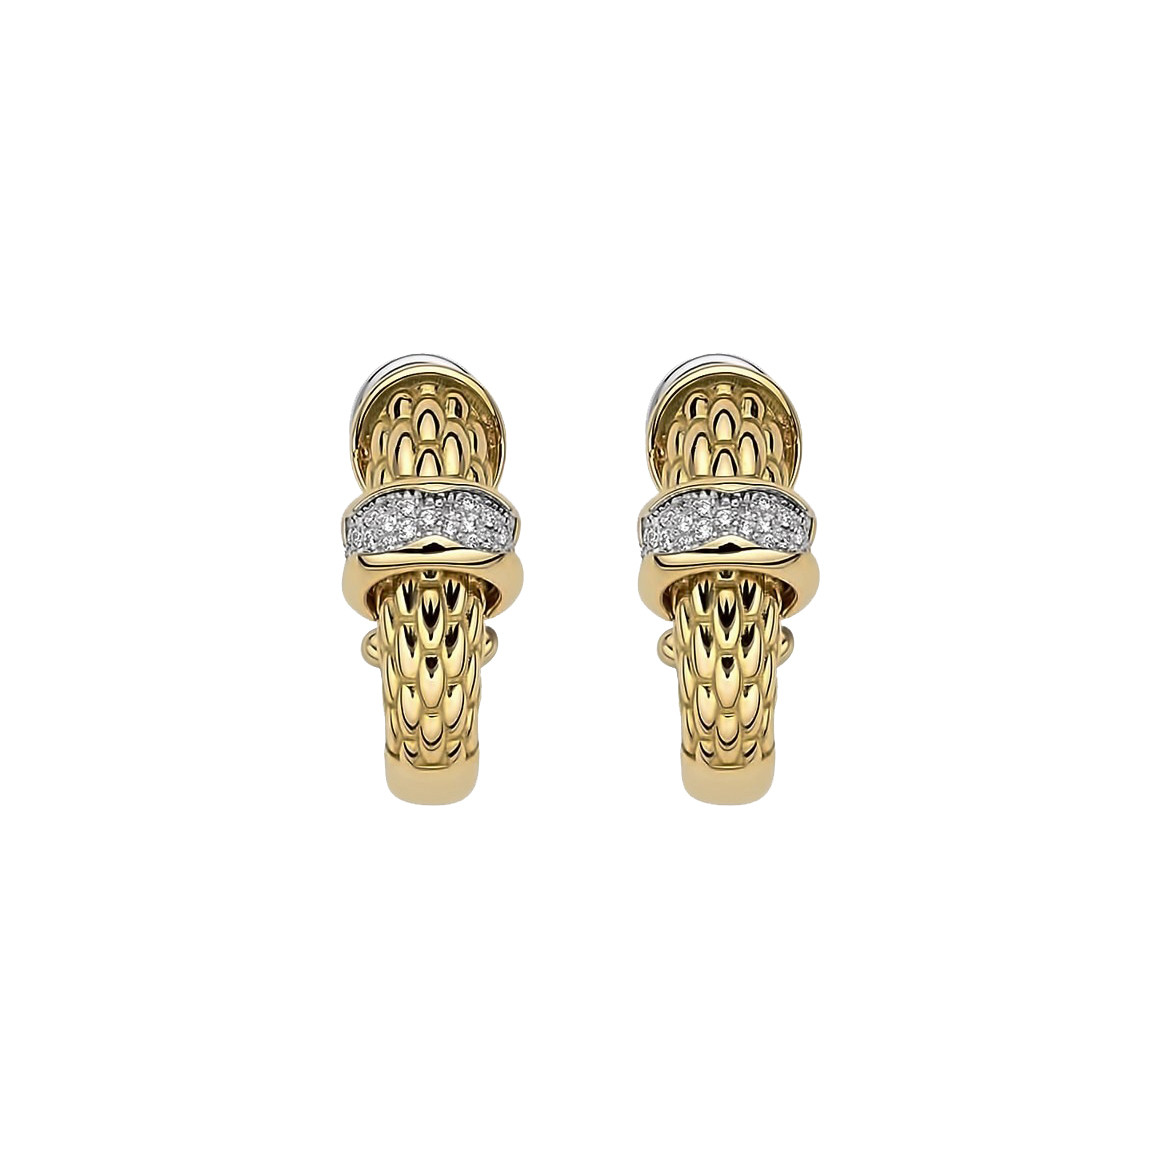 Fope Diamond Pavé Huggie Earrings in Yellow Gold front image